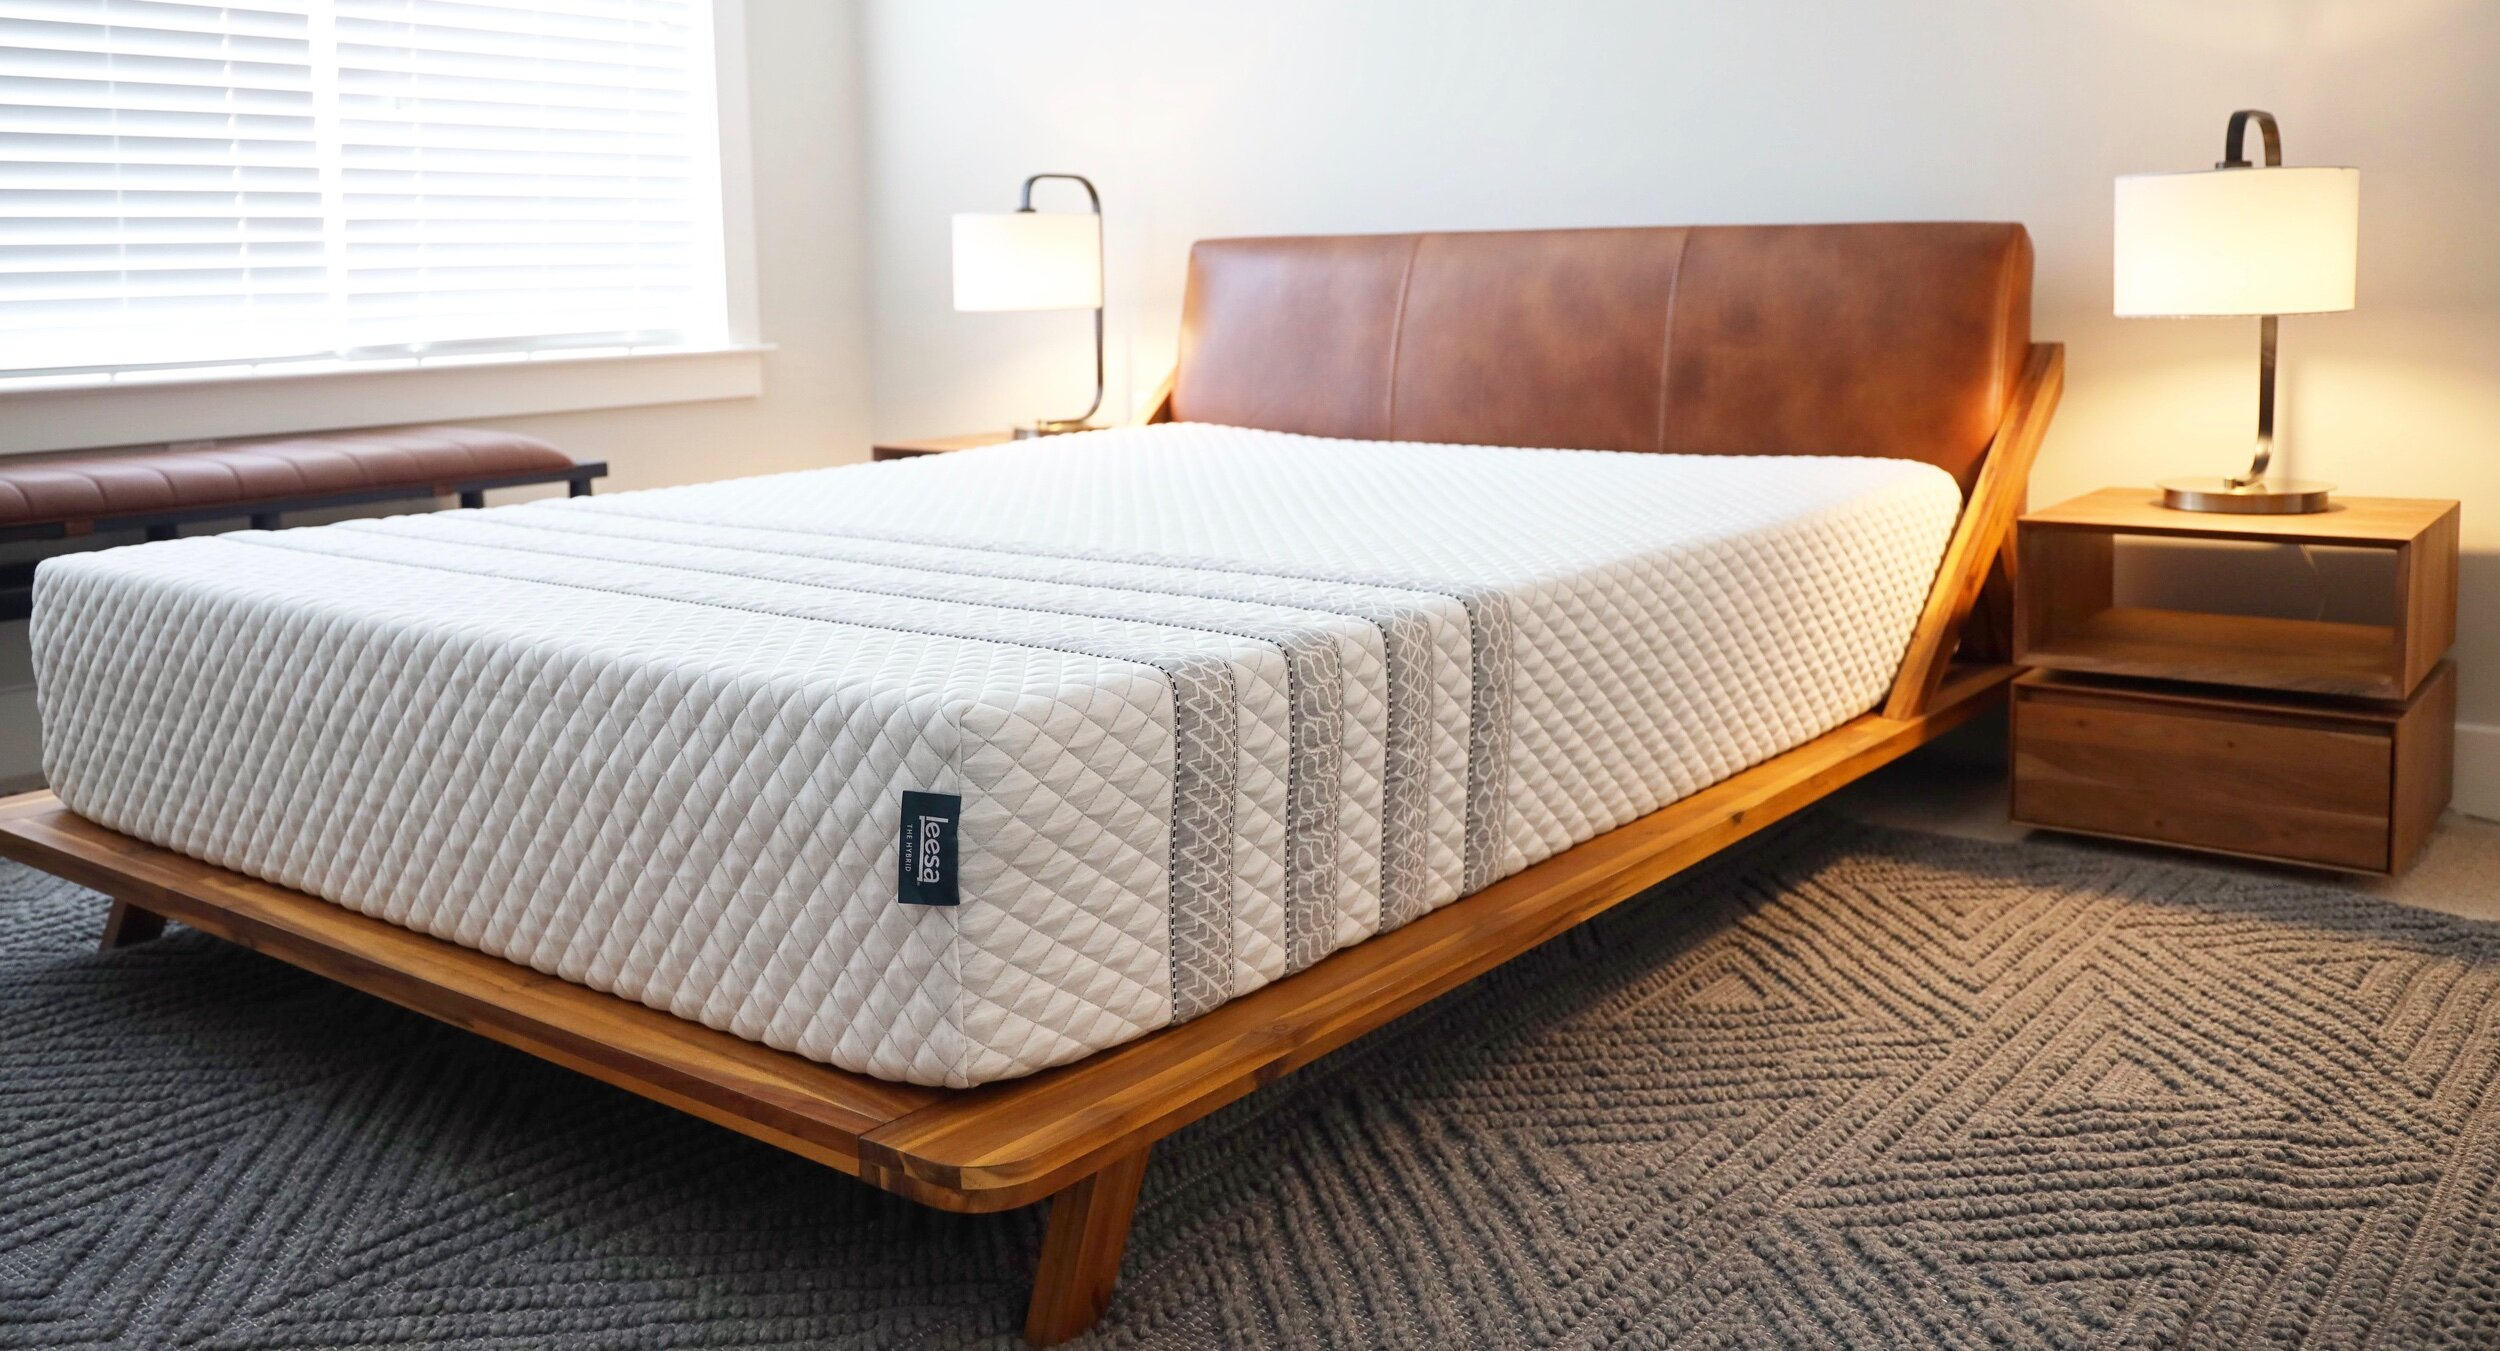 Leesa Hybrid Mattress Product Review Andrewloves